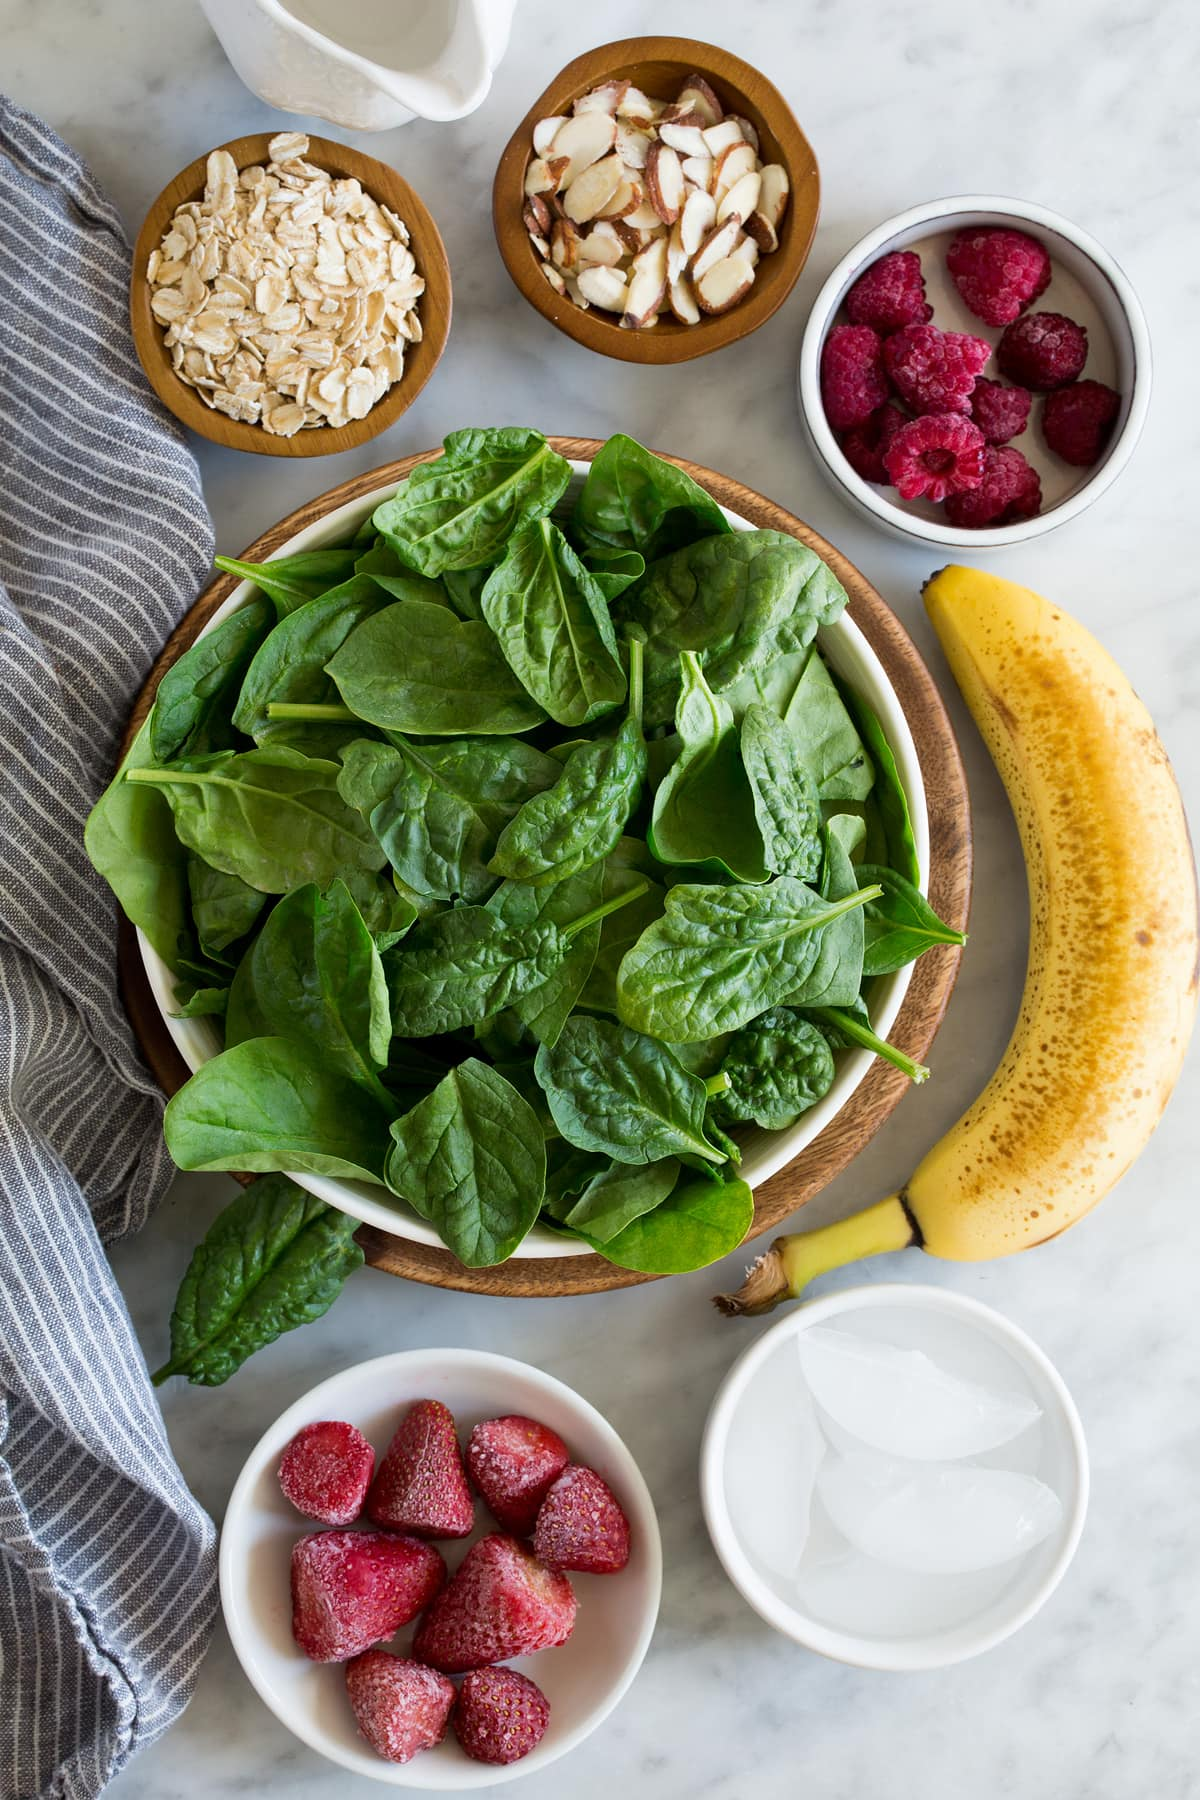 Ingredients needed to make green smoothie shown here including spinach, strawberries, raspberries, bananas, almonds, oats, water, and ice.